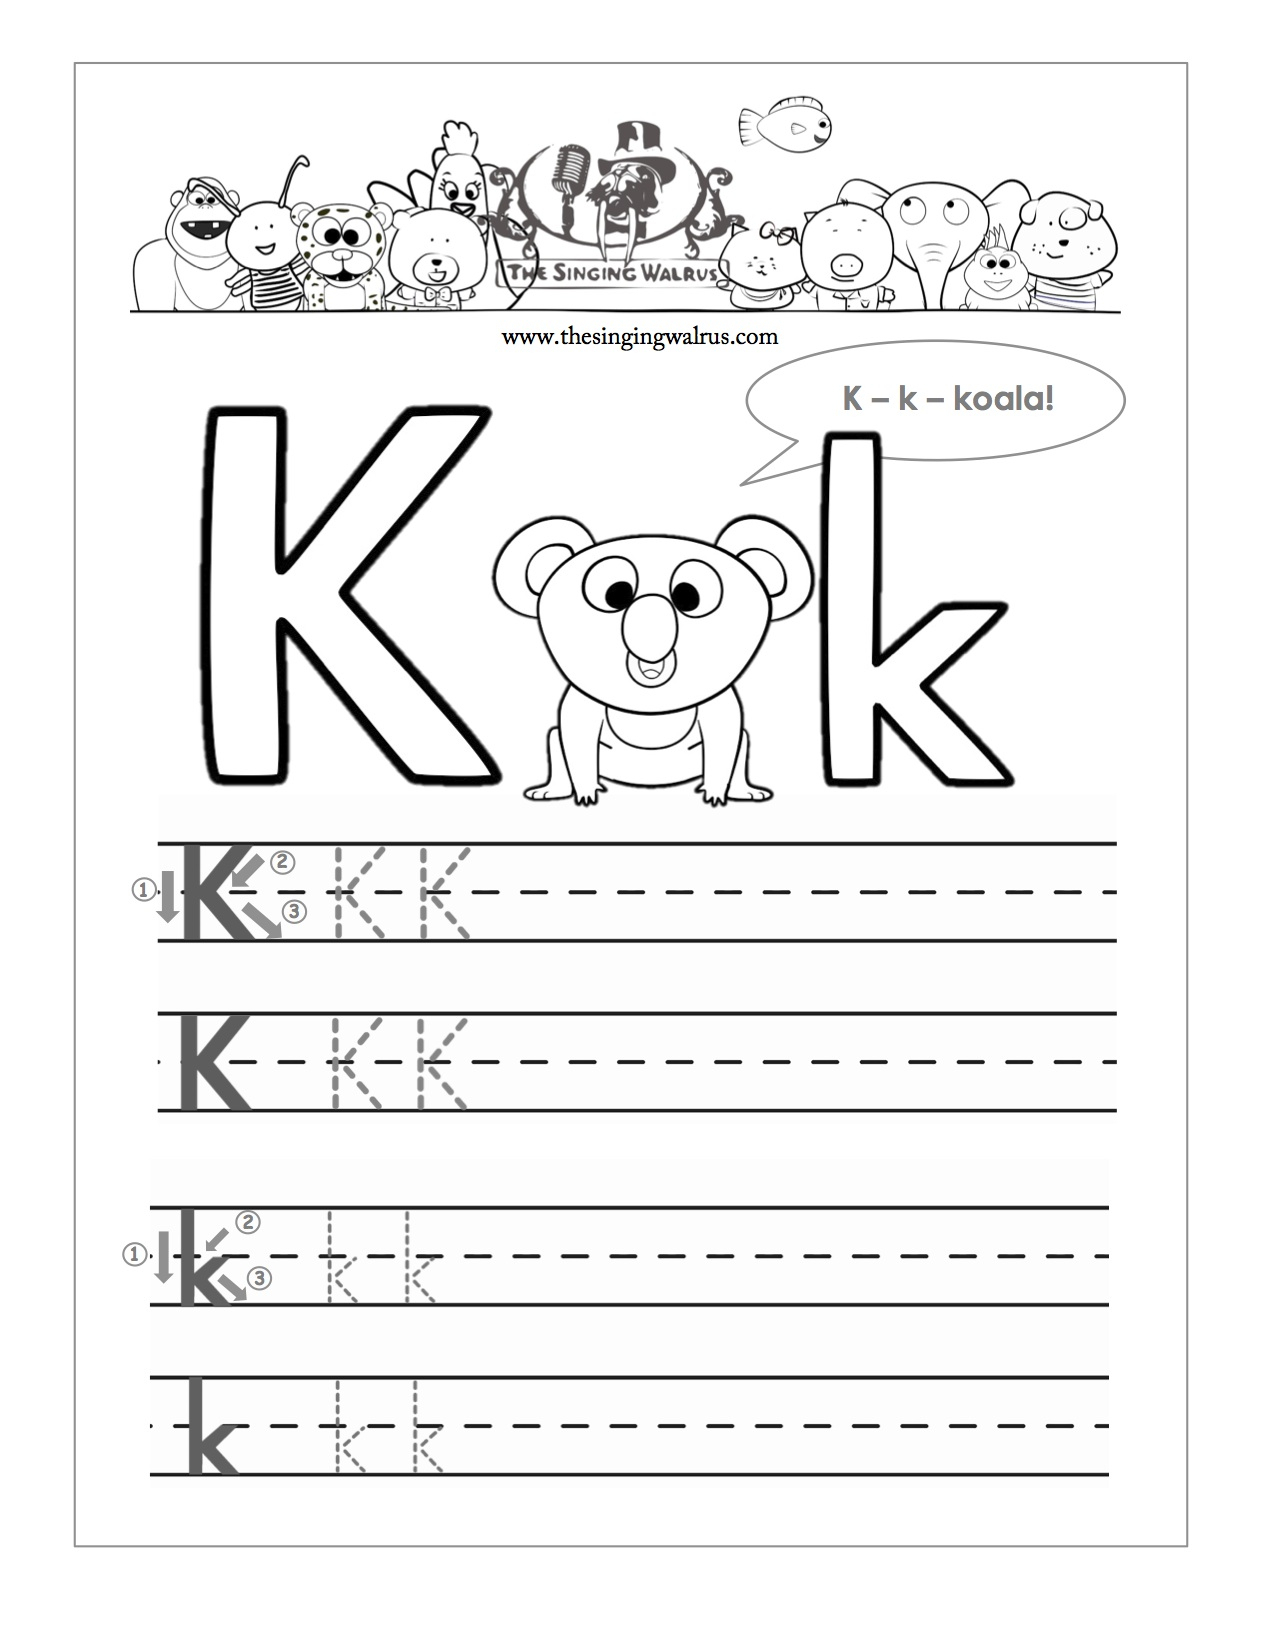 15 Learning The Letter K Worksheets | Kittybabylove with regard to Letter K Worksheets For Toddlers